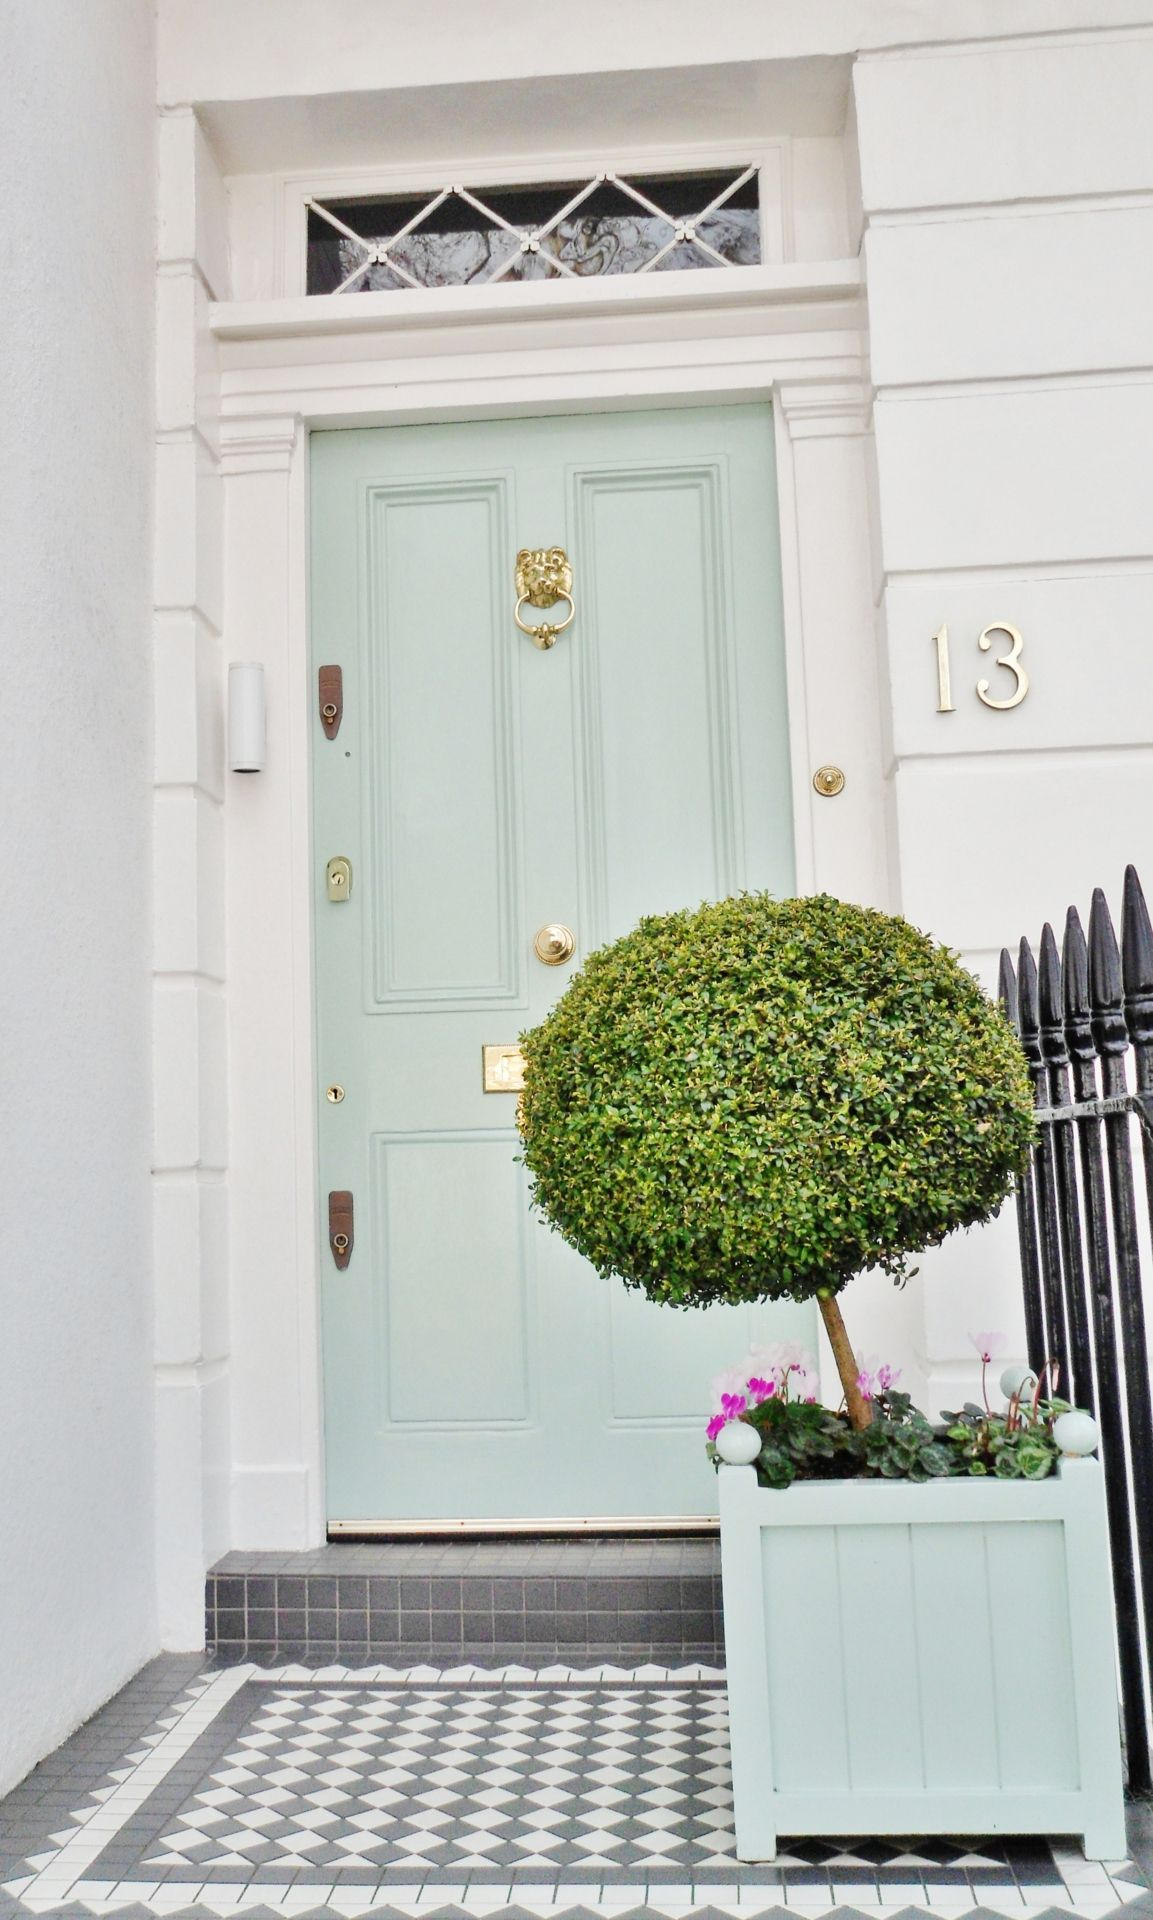 House approach in Chelsea London Mint colored door